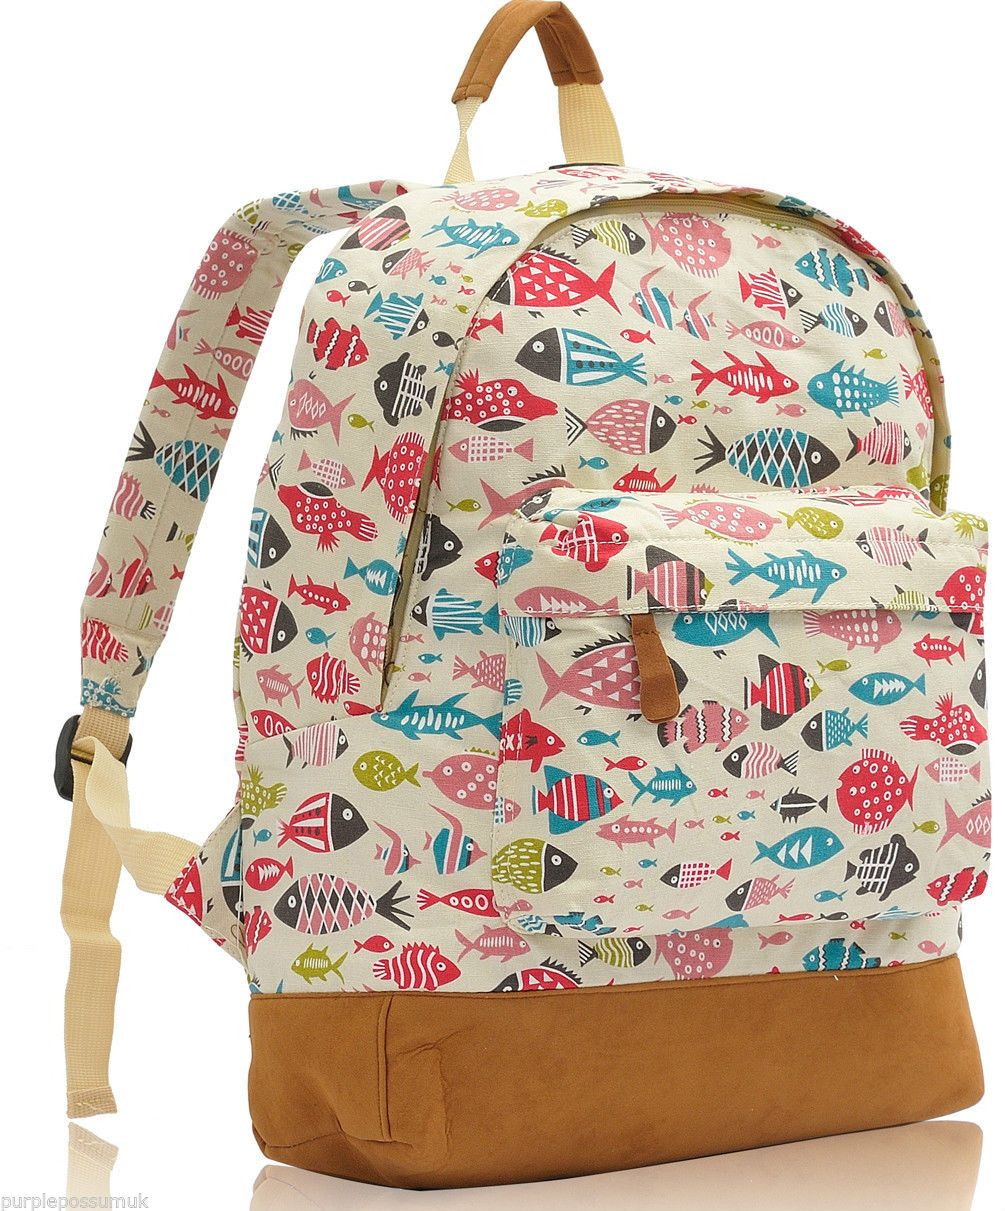 Small Backpacks For Girls mJ3NqSq4